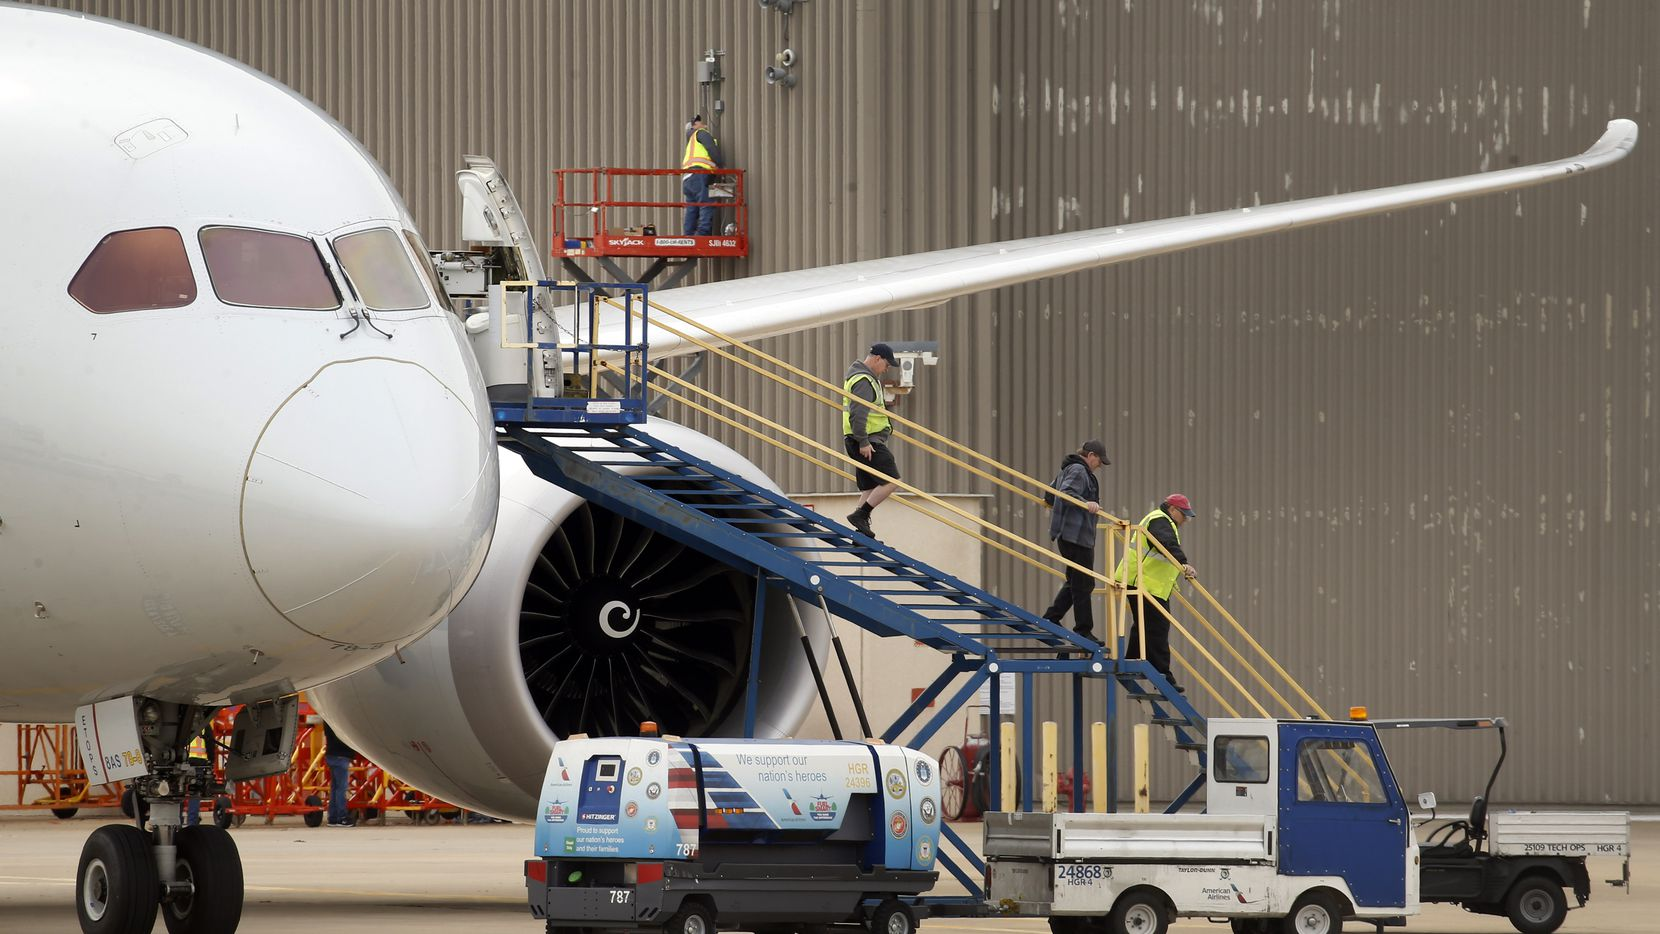 American Airlines maintenance crewman work on an aircraft outside an American hanger at Dallas-Fort Worth International Airport, Tuesday, January 21, 2020. (Tom Fox/The Dallas Morning News)